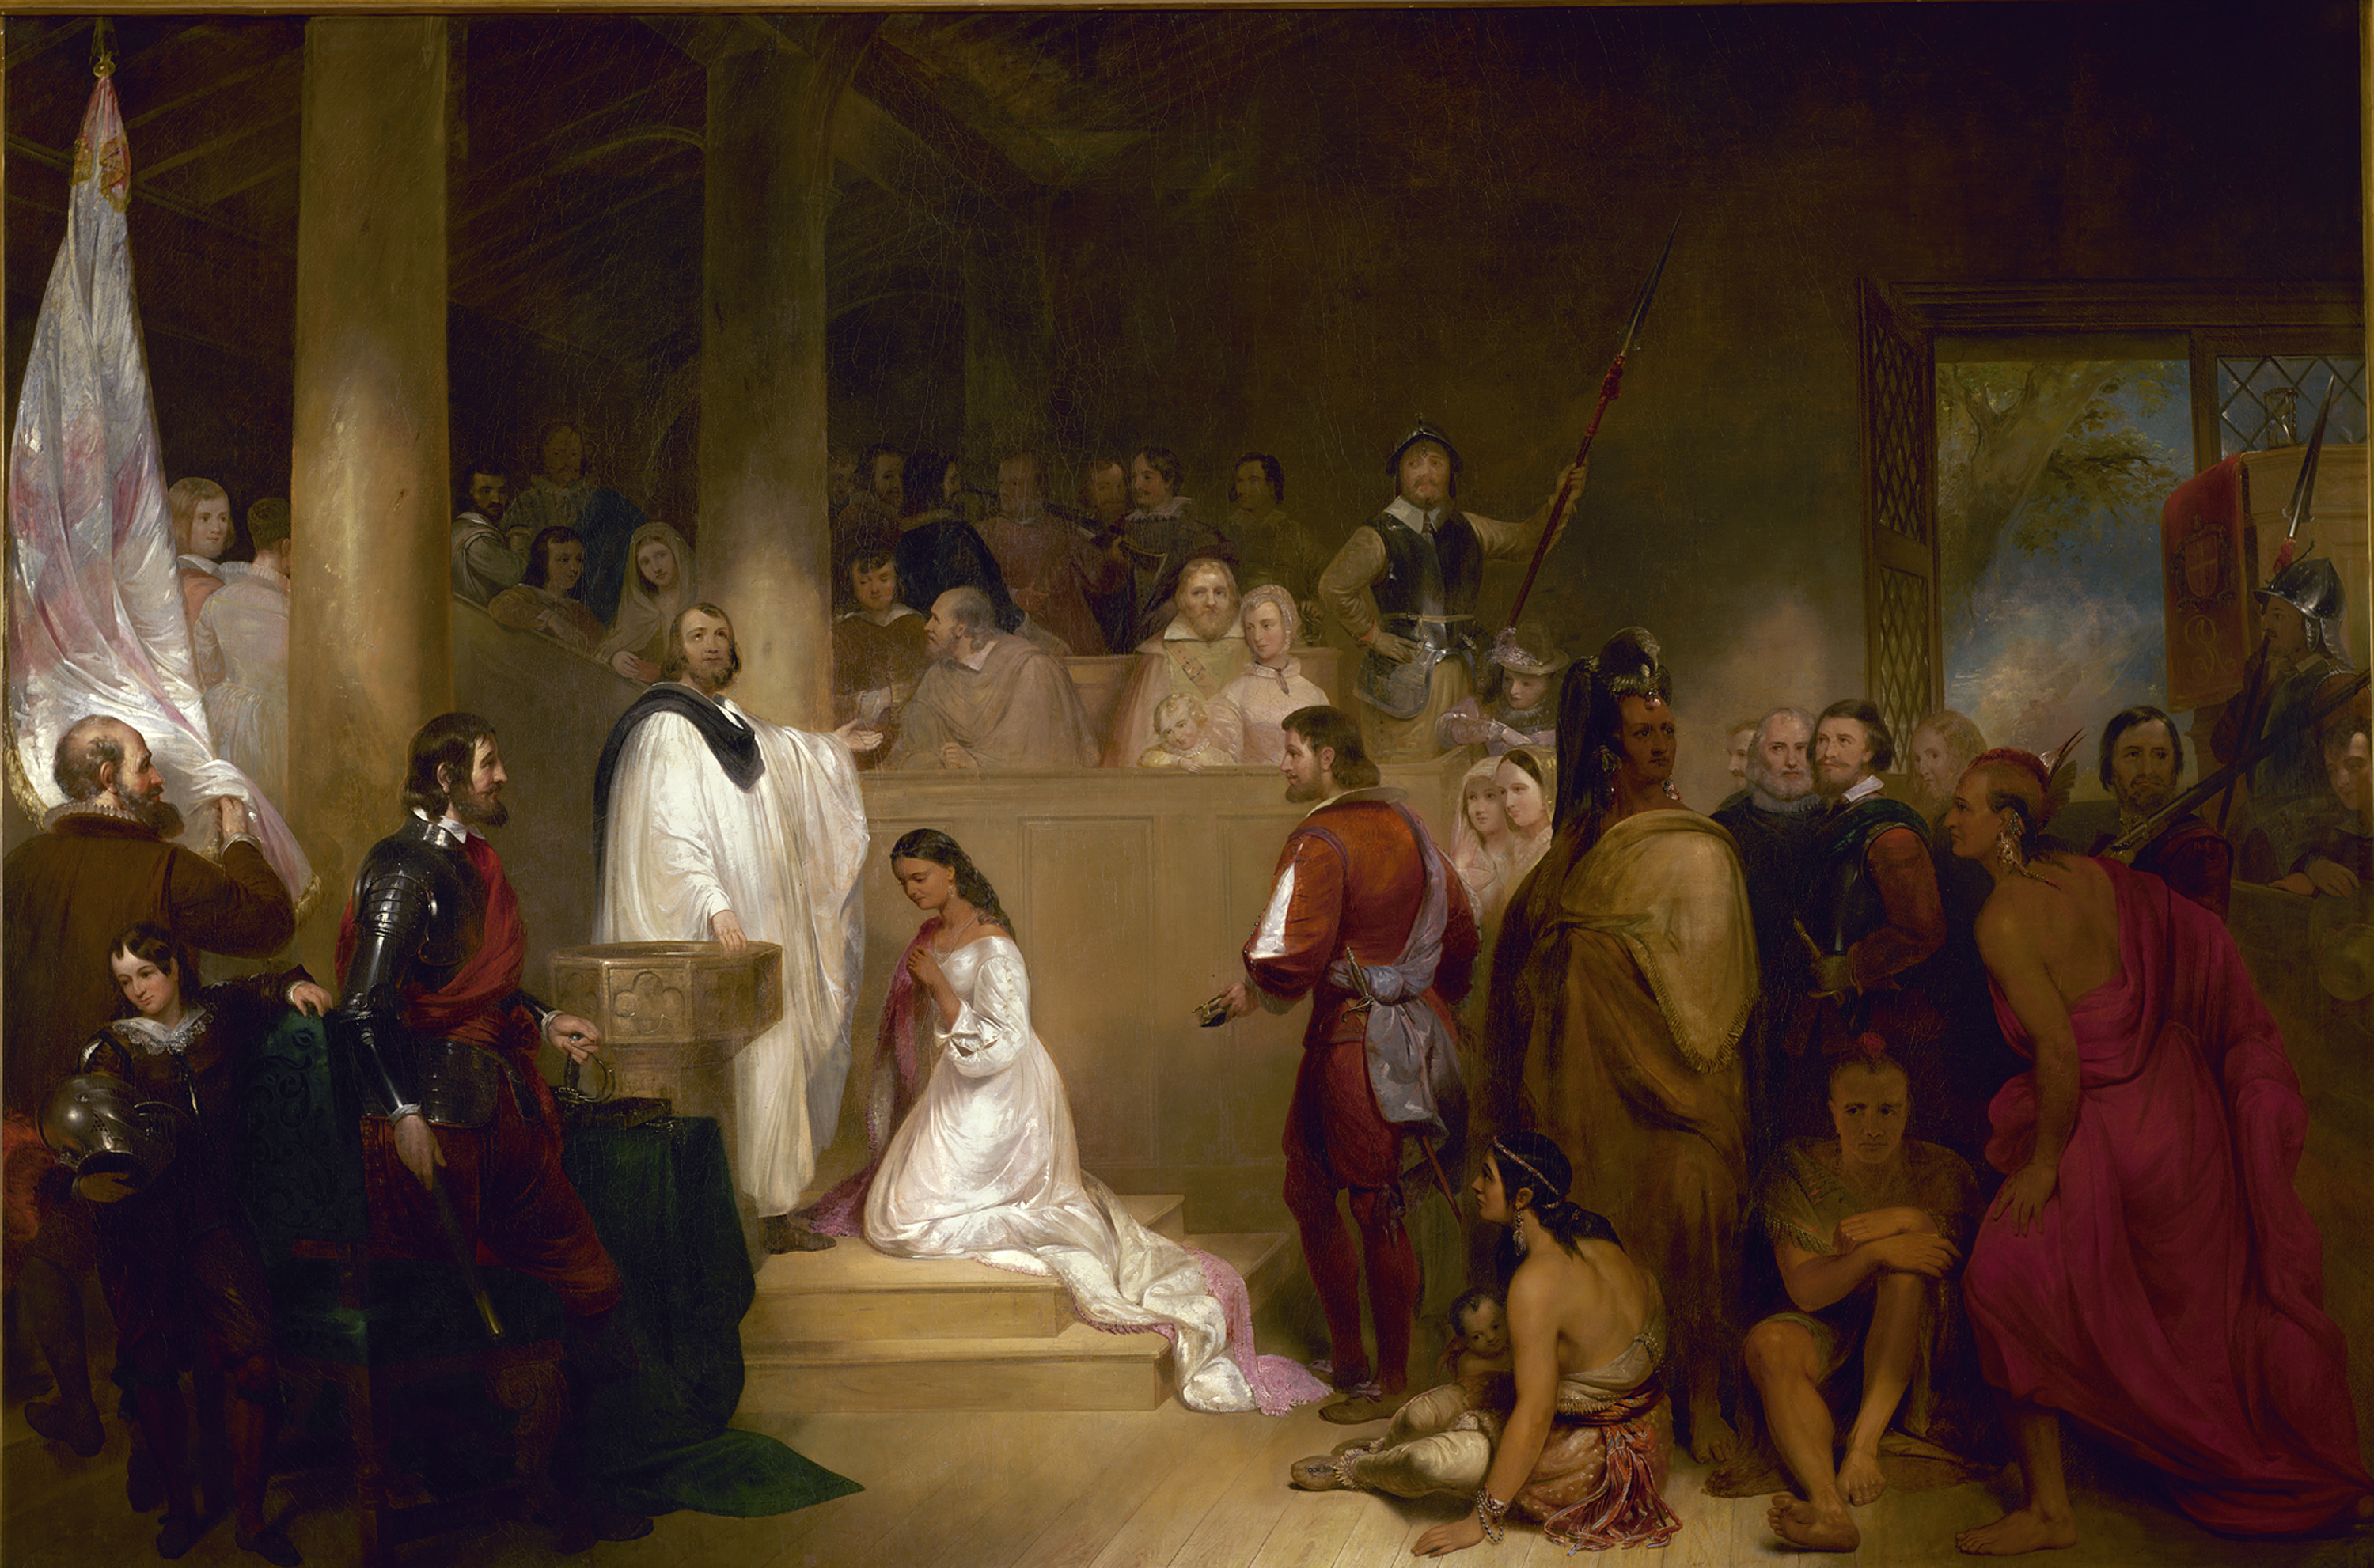 The Baptism of Pocahontas by John Gadsby Chapman, (1840). A copy is on display in the Rotunda of the US Capitol. The oil on canvas depicts Pocahontas, wearing white, being baptized Rebecca by Anglican minister Alexander Whiteaker in Jamestown, Virginia; this event is believed to have taken place in 1613 or 1614. She kneels, surrounded by family members and colonists. Her brother Nantequaus turns away from the ceremony. The baptism took place before her marriage to Englishman John Rolfe, who stands behind her. Their union is said to be the first recorded marriage between a European and a Native American. The scene symbolizes the belief of Americans at the time that Native Americans should accept Christianity and other European ways.